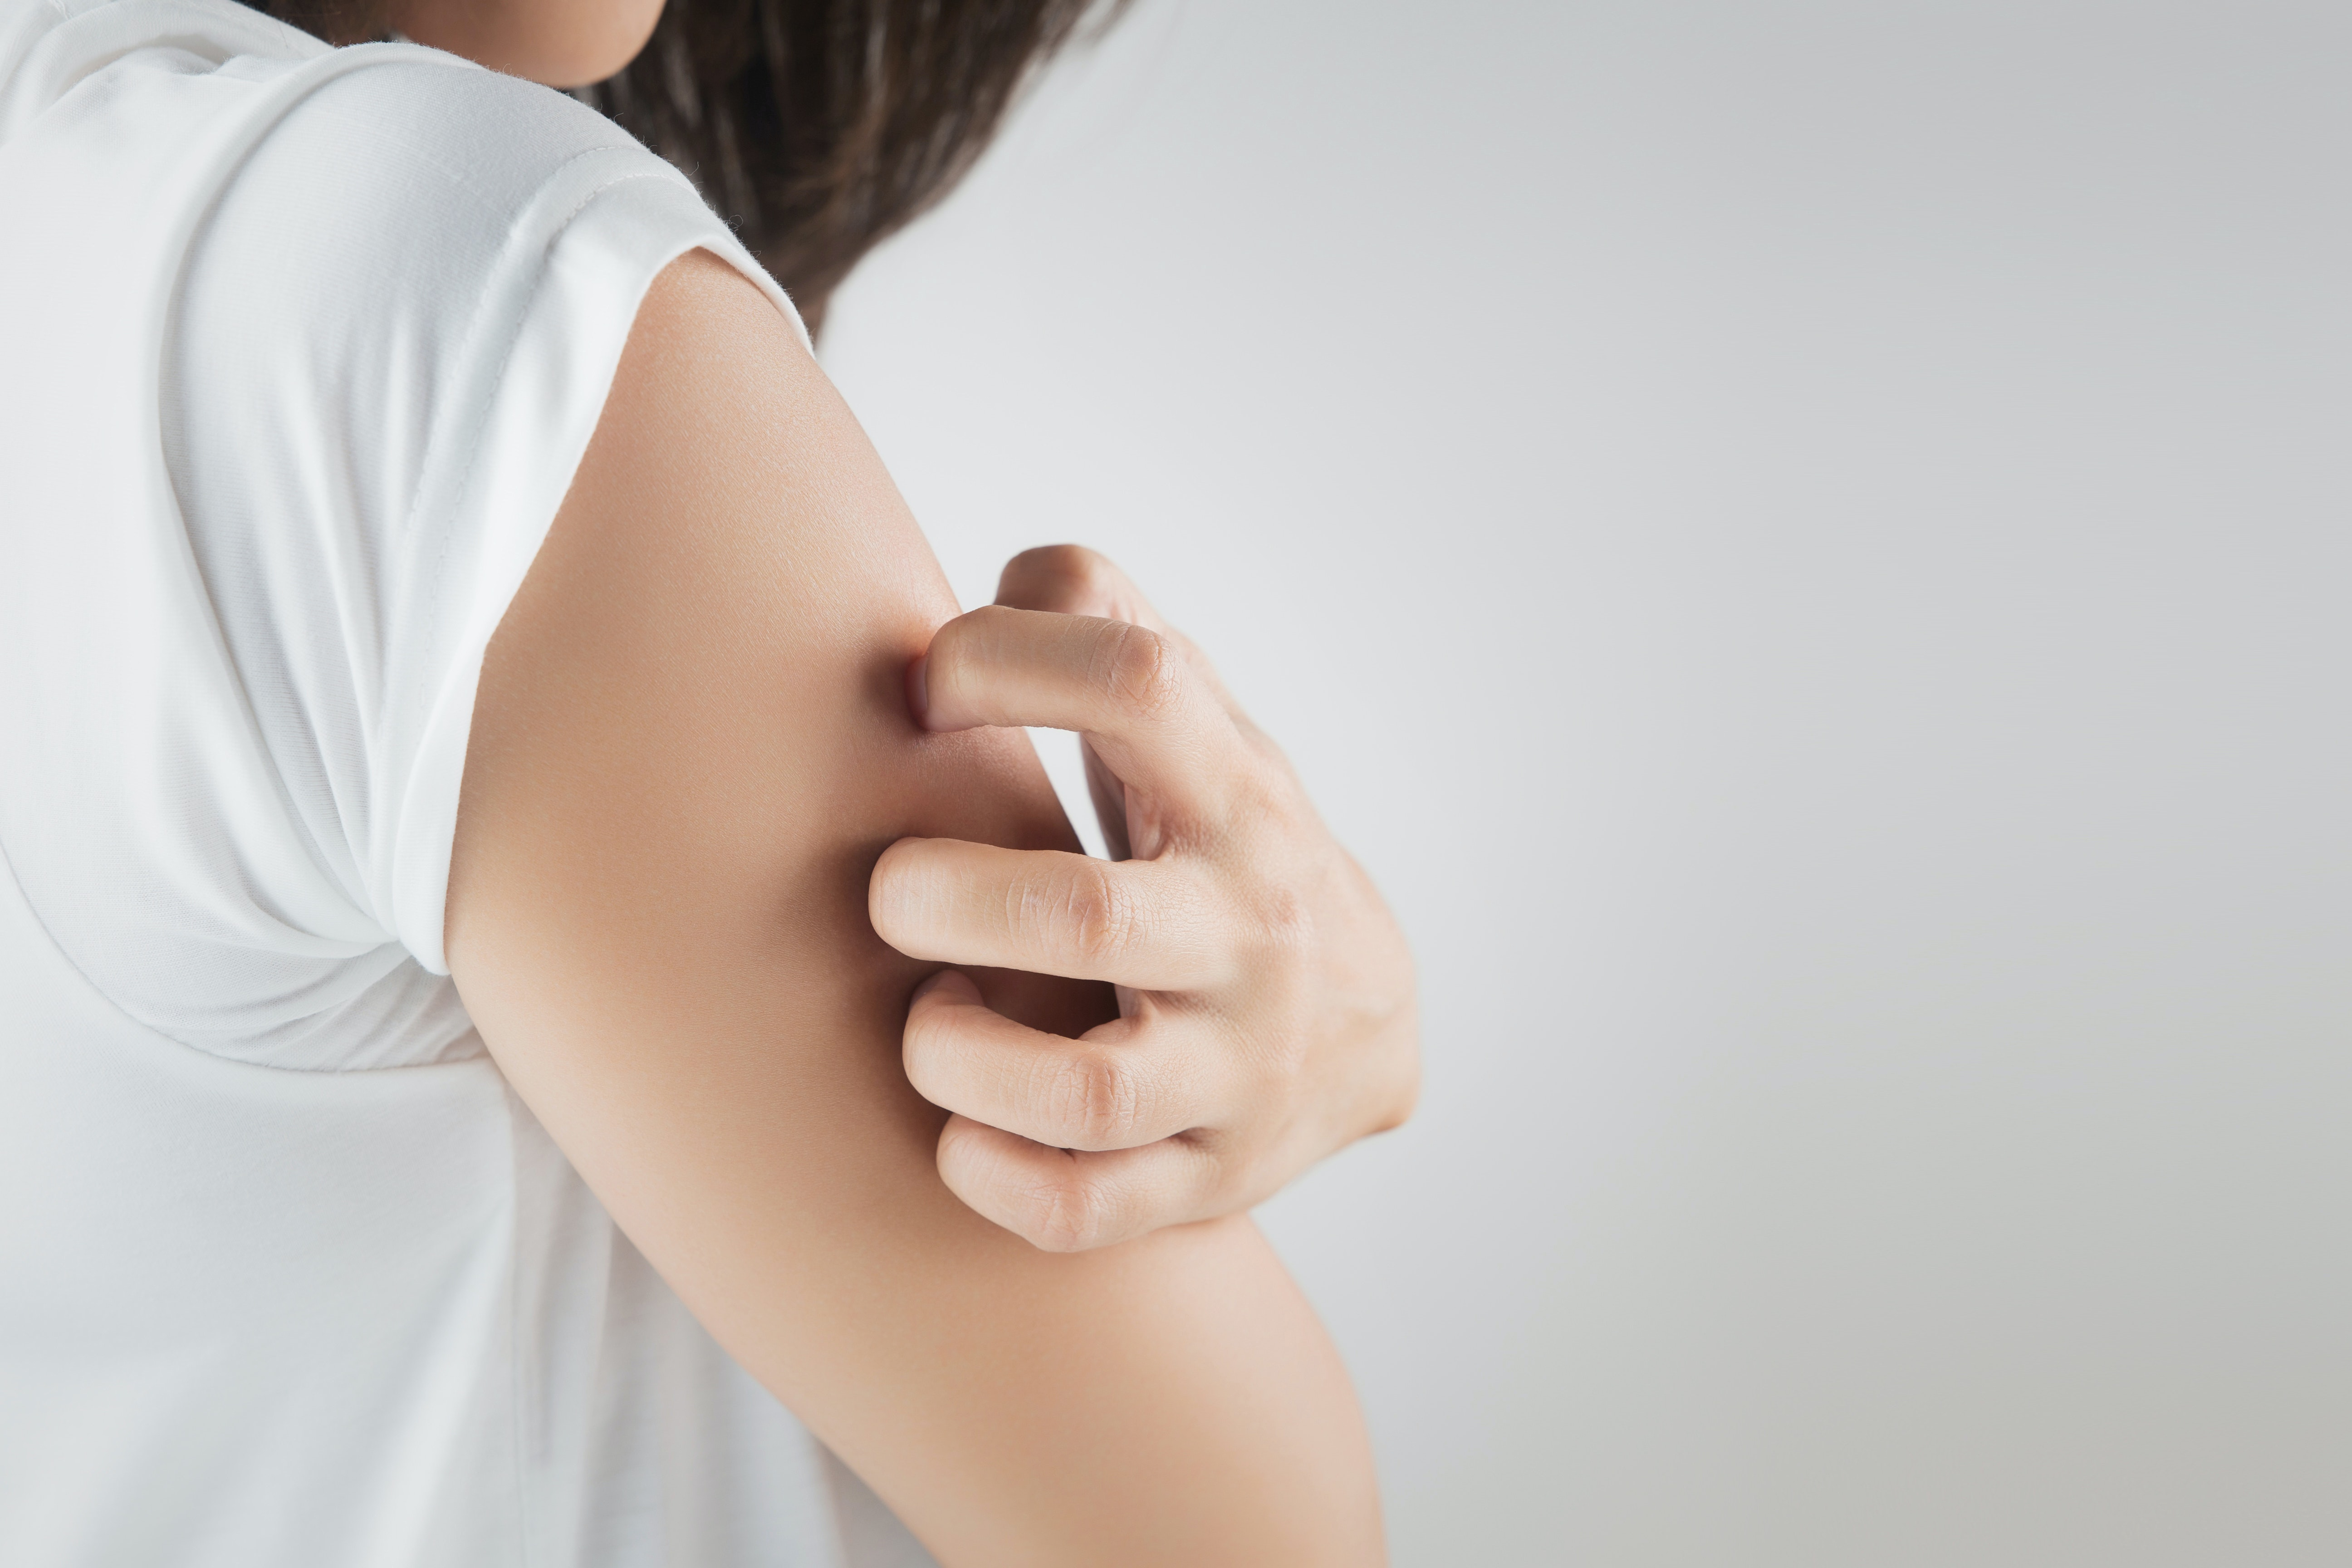 An image depicting a person suffering from upper arm itch symptoms